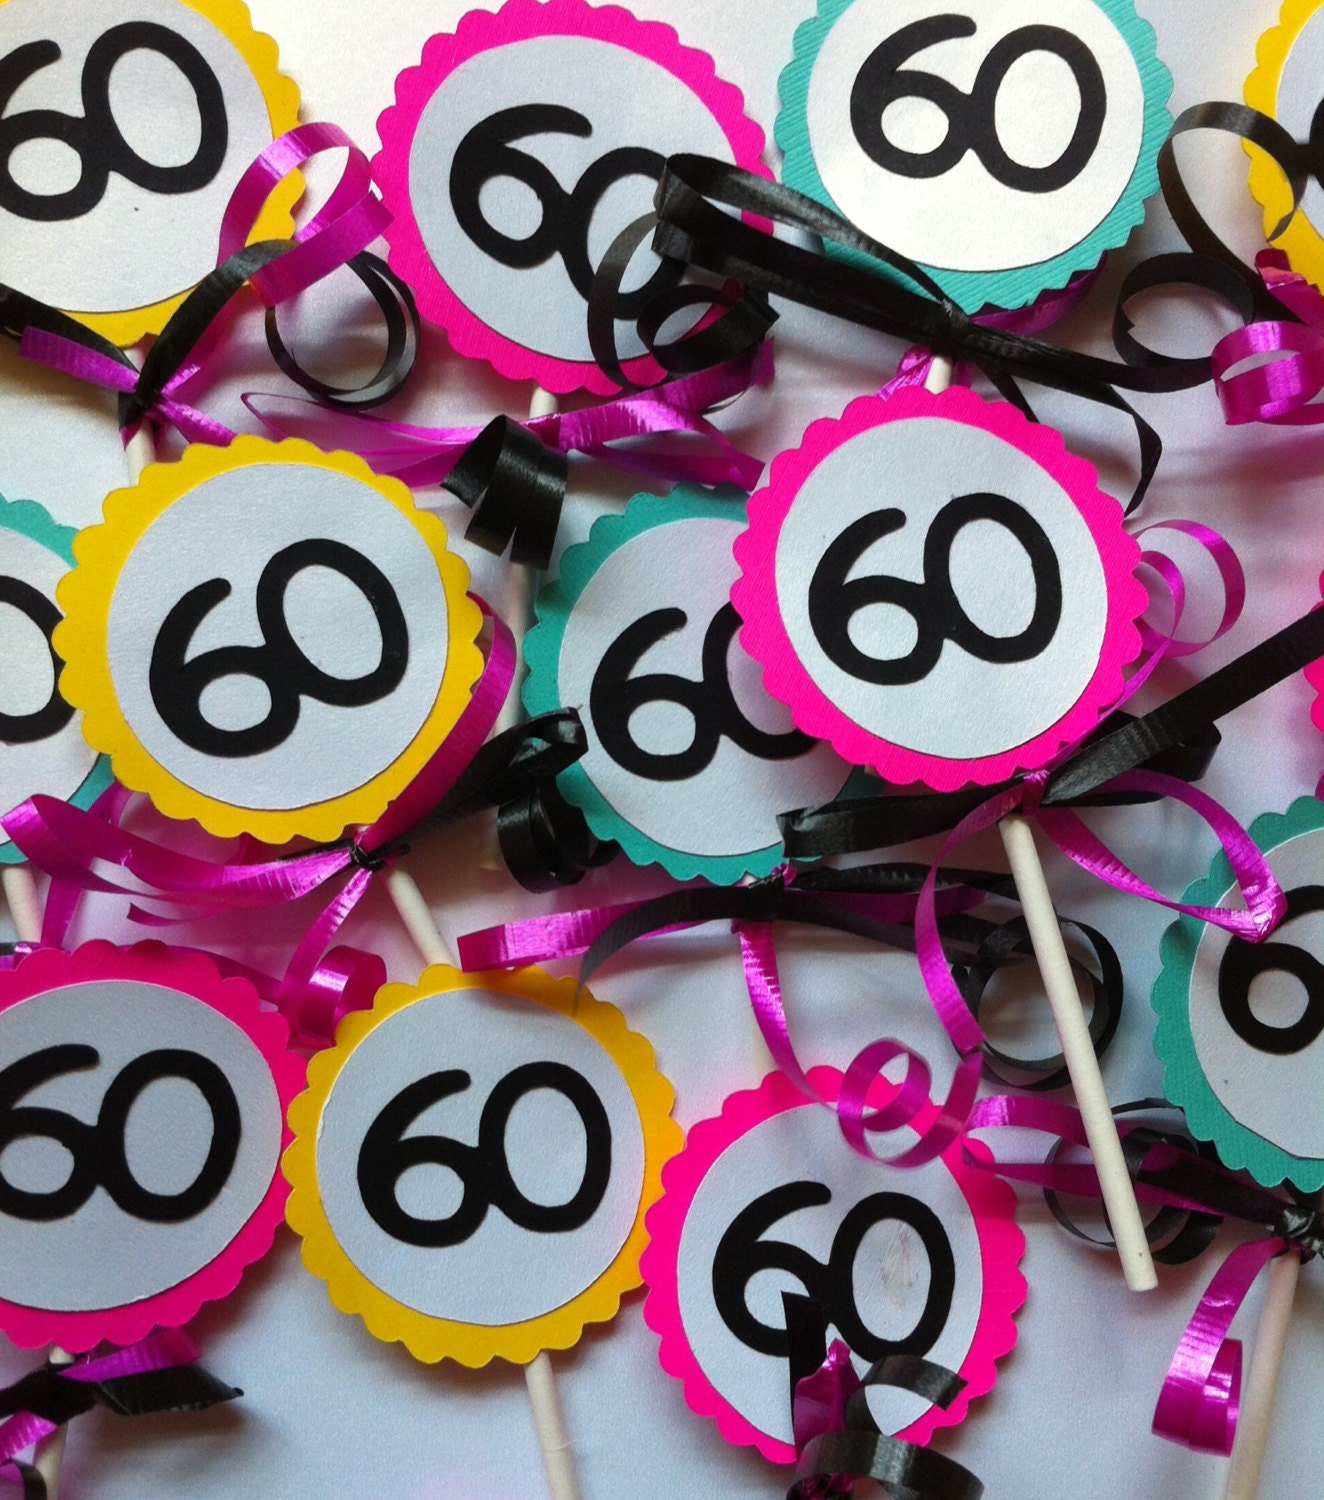 60th birthday decorations cupcake toppers for 60 birthday decoration party